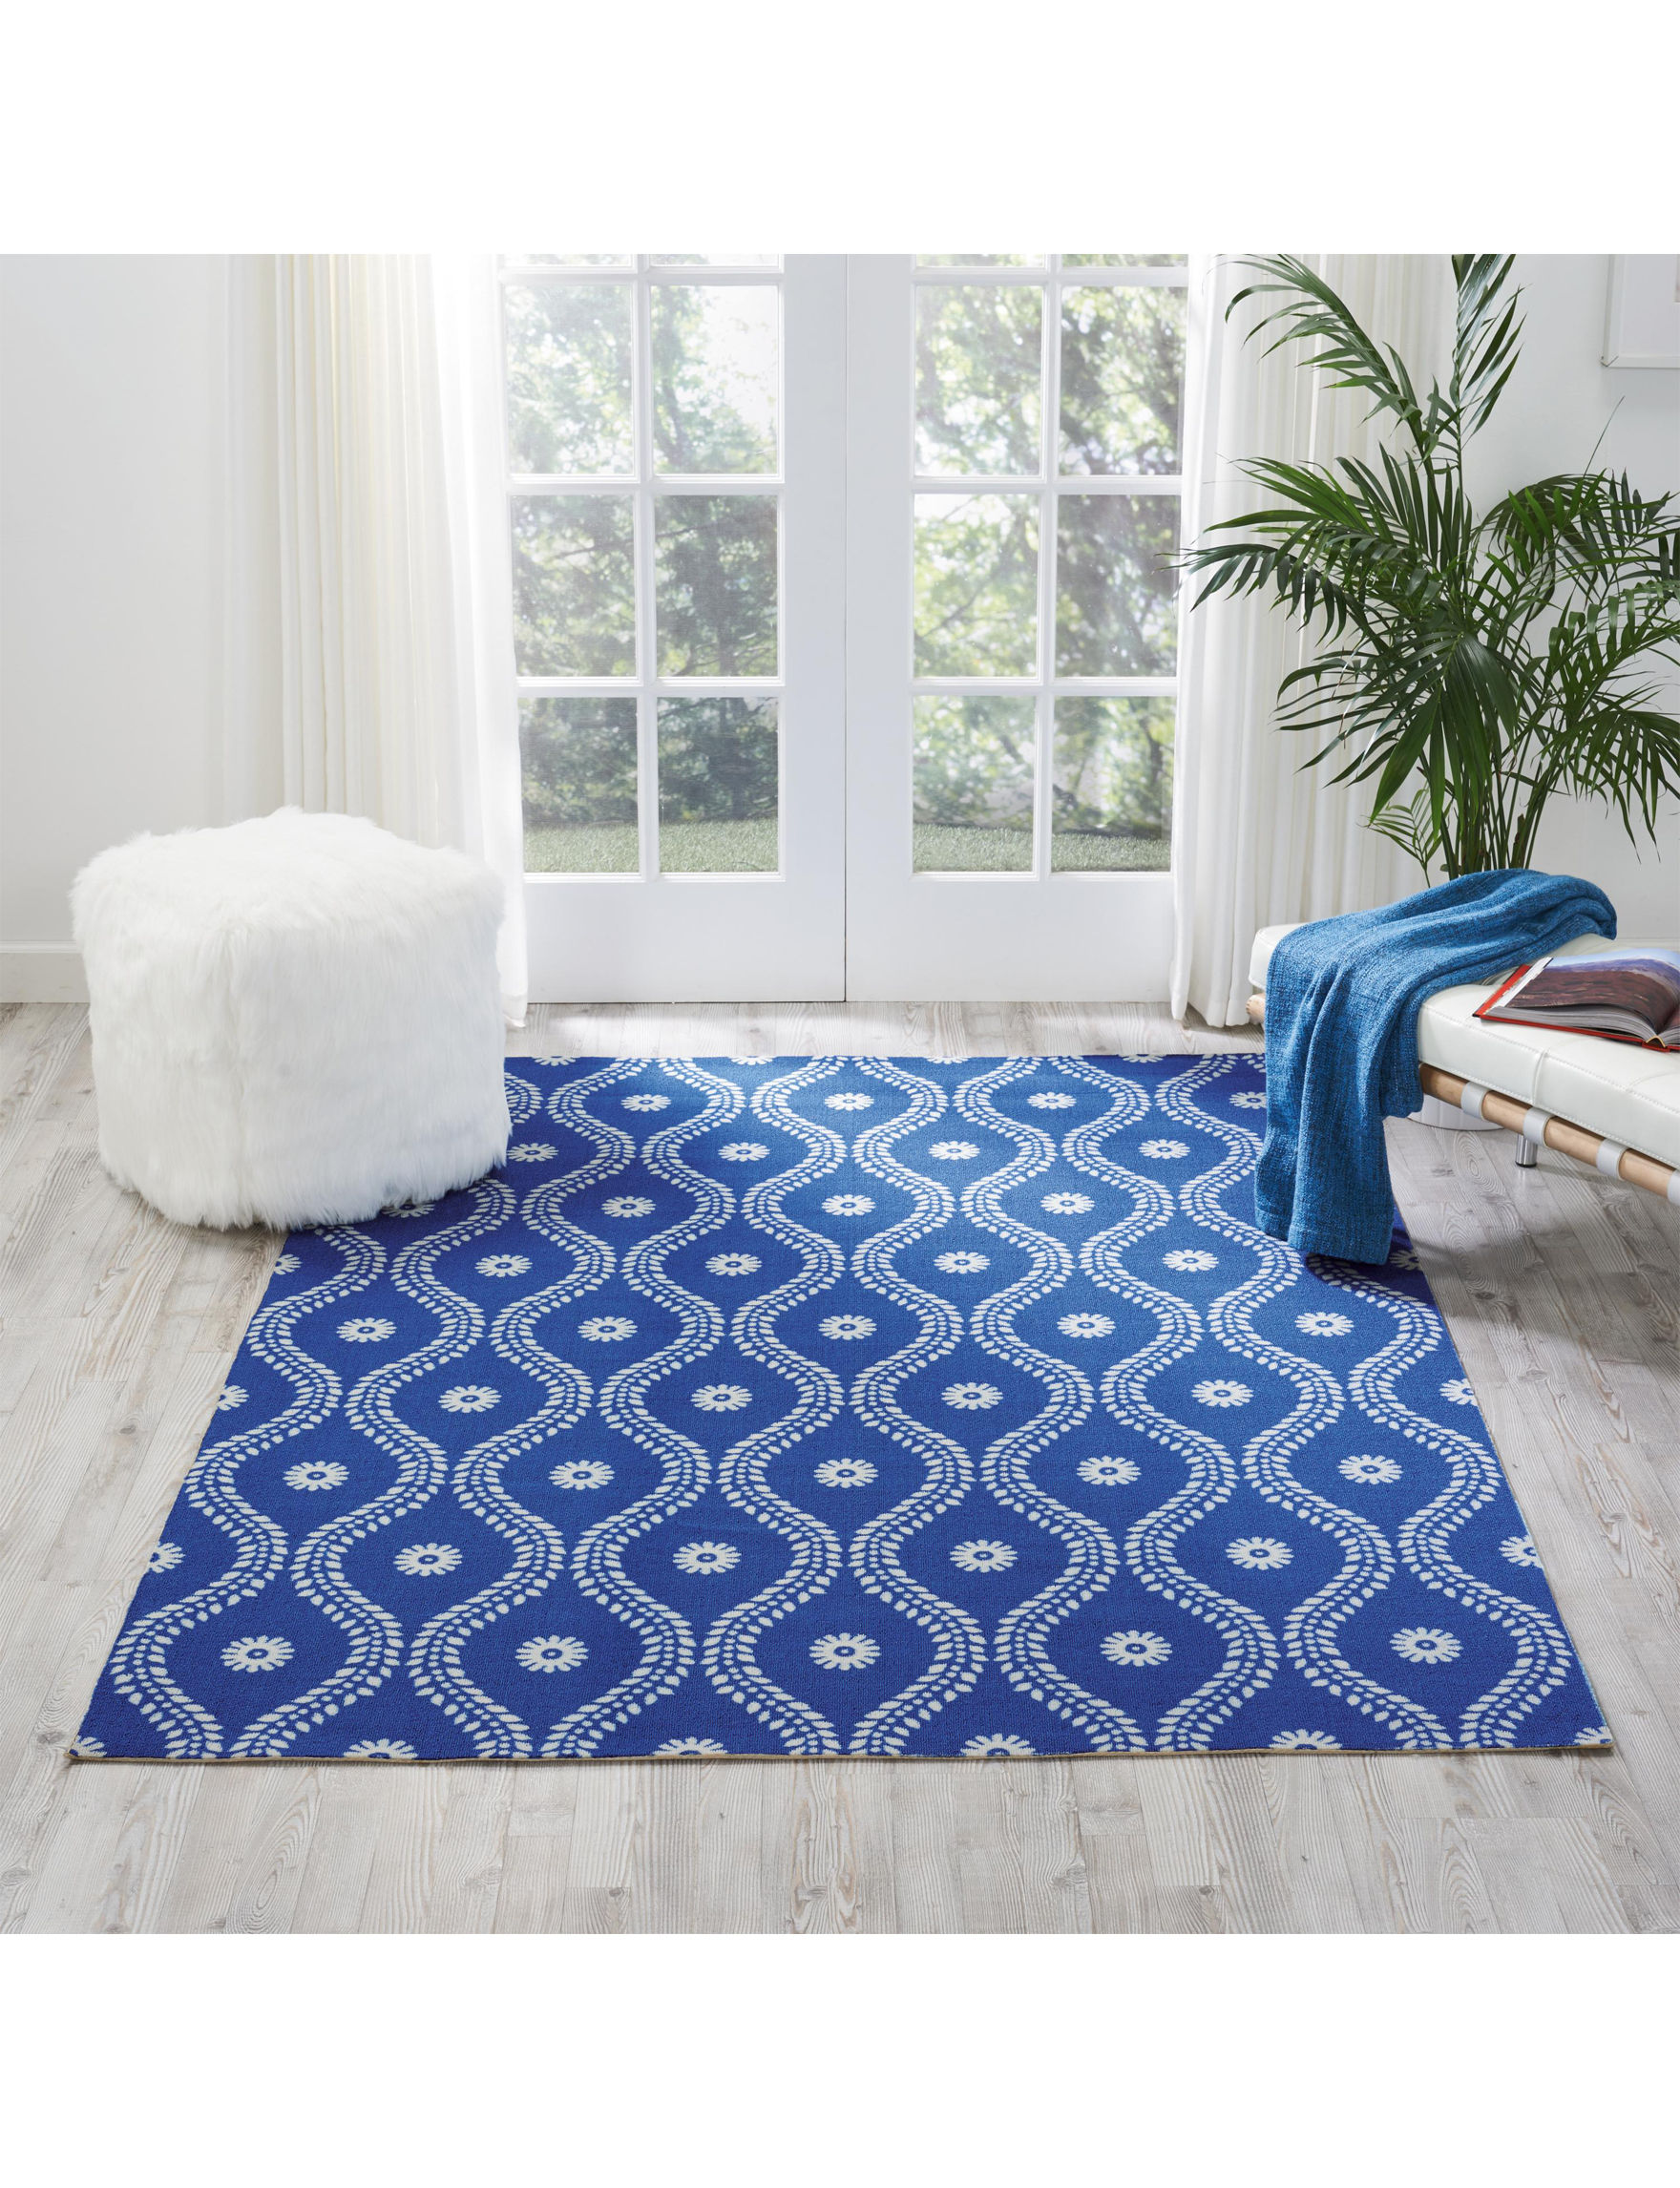 Nourison Navy Outdoor Decor Rugs